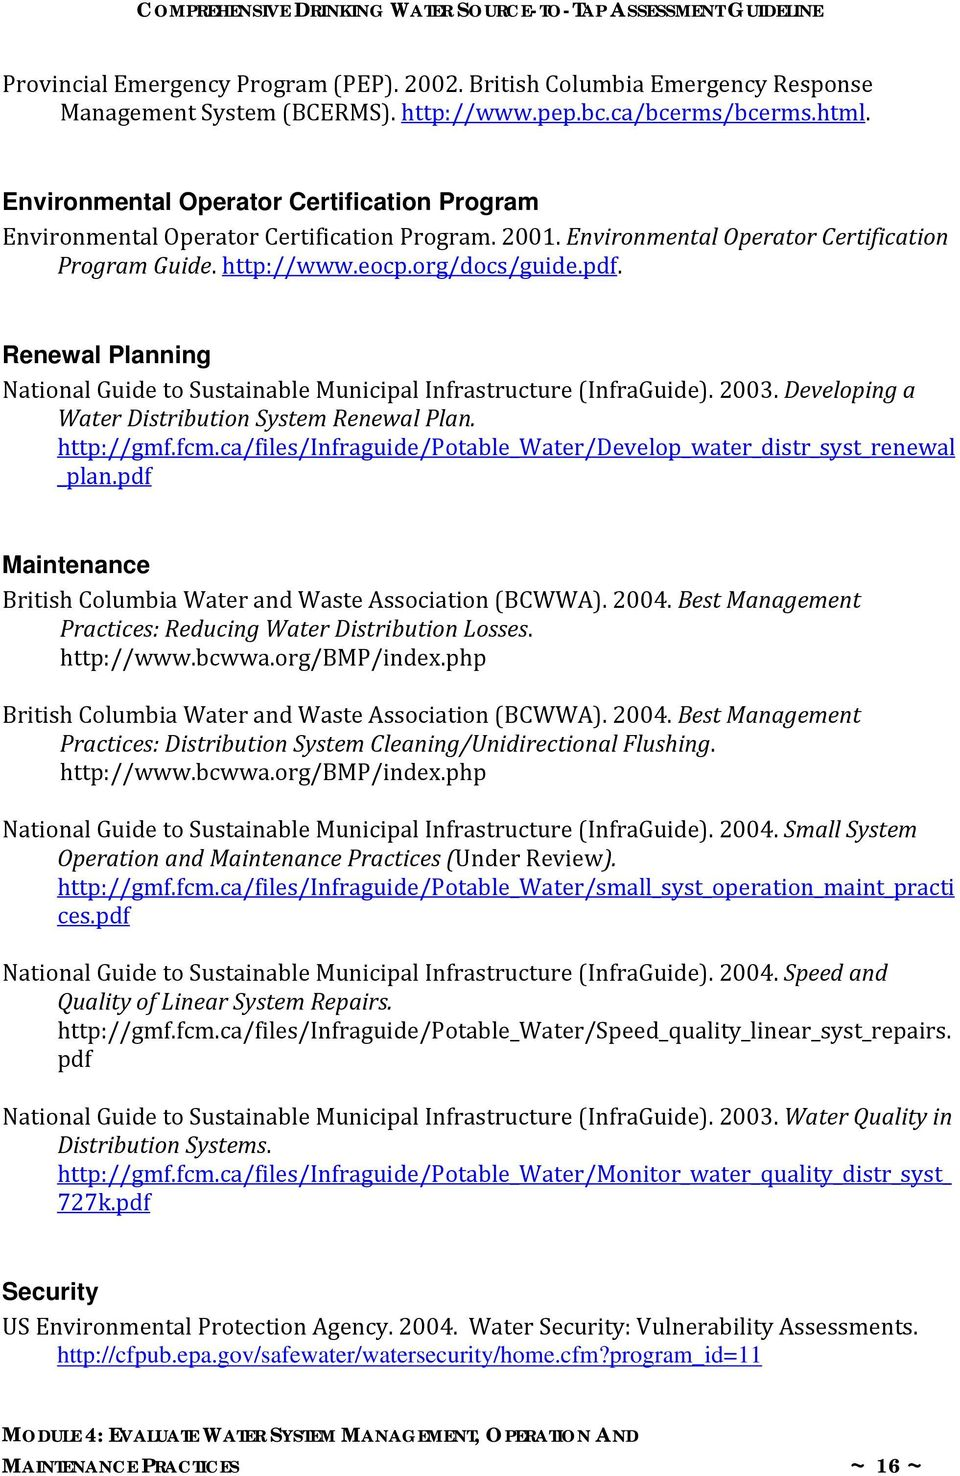 Renewal Planning National Guide to Sustainable Municipal Infrastructure (InfraGuide). 2003. Developing a Water Distribution System Renewal Plan. http://gmf.fcm.